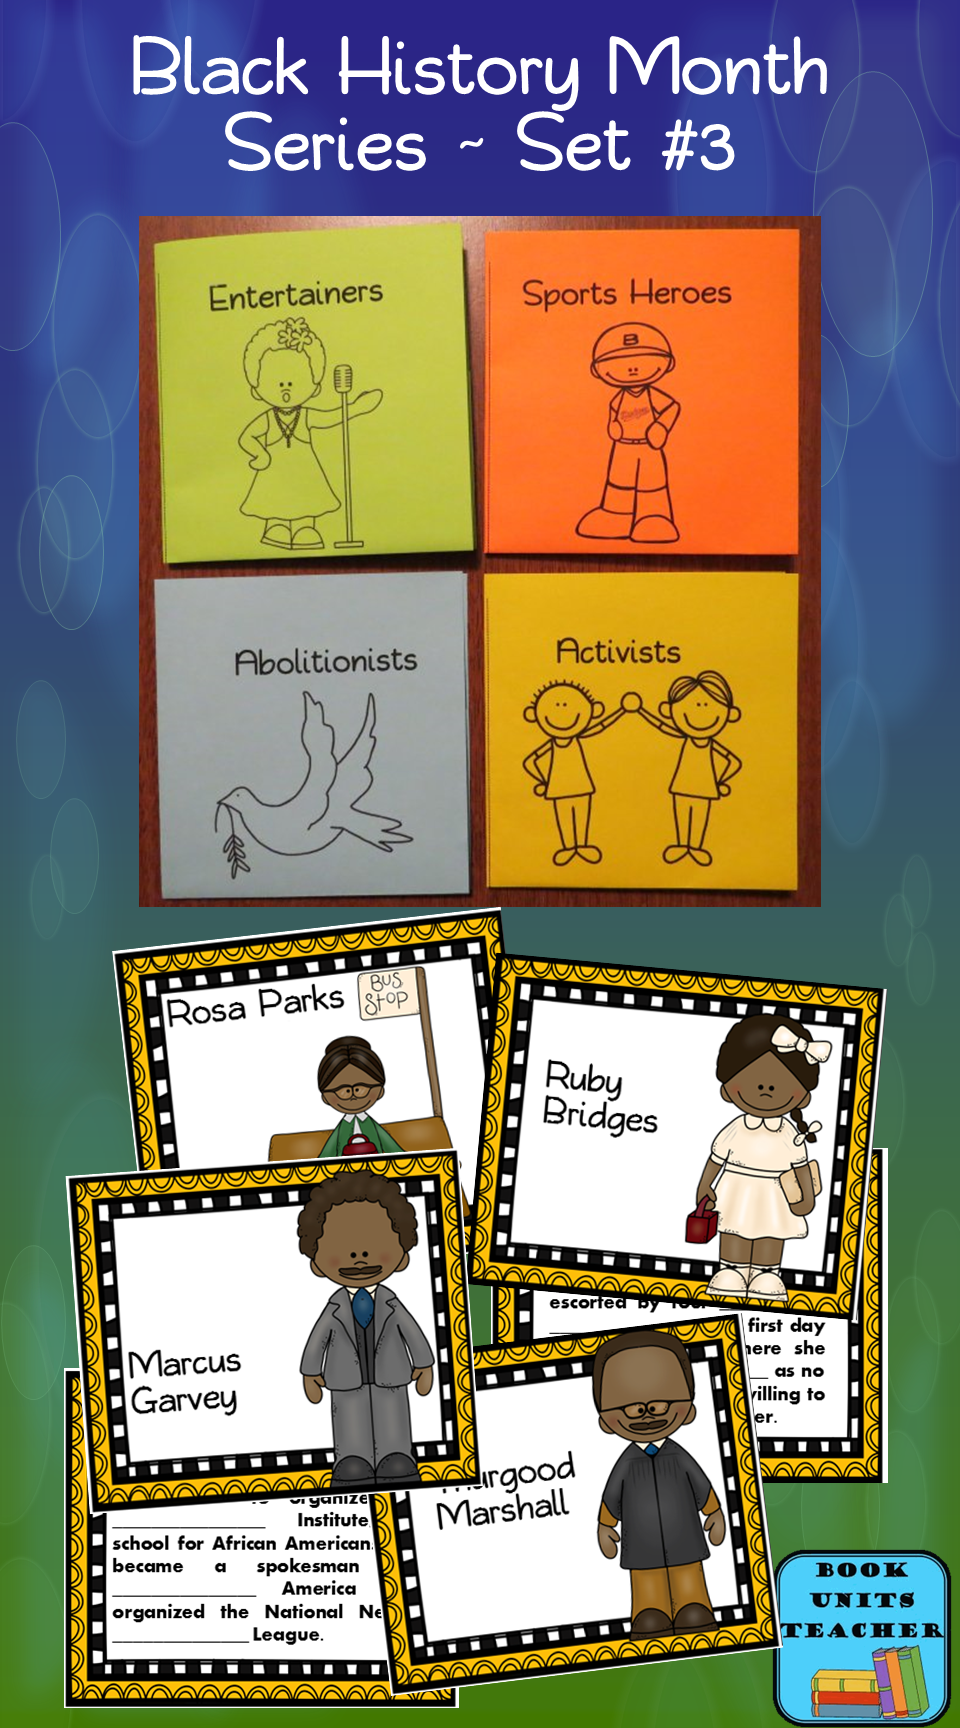 Free Printable Black History Month Cards - the Activists